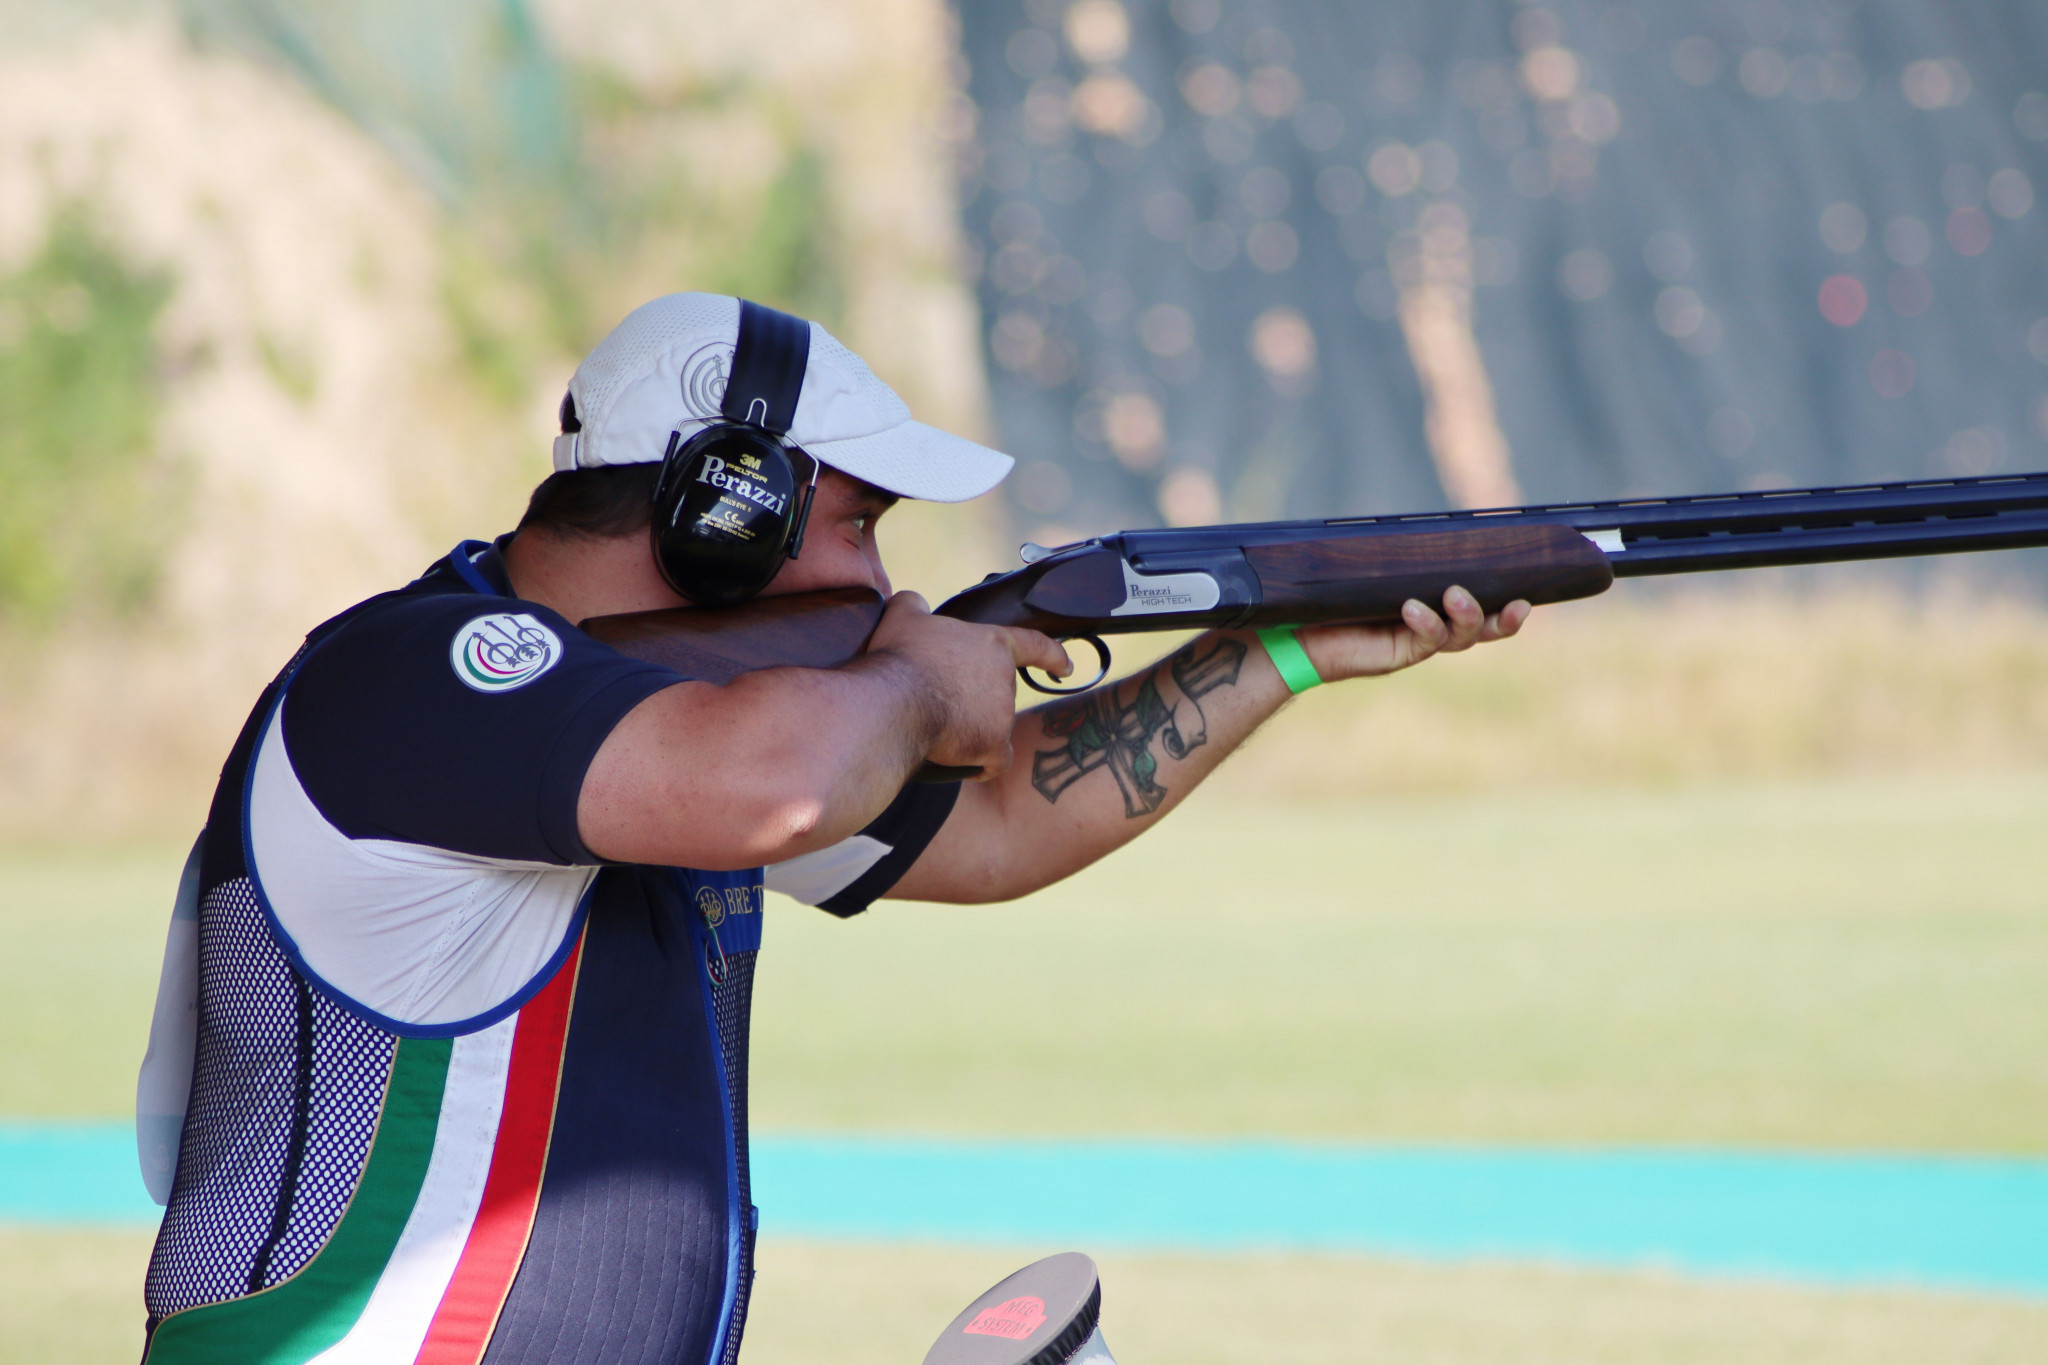 Success for Cyprus, Spain and Italy at WSPS Para Trap World Championships